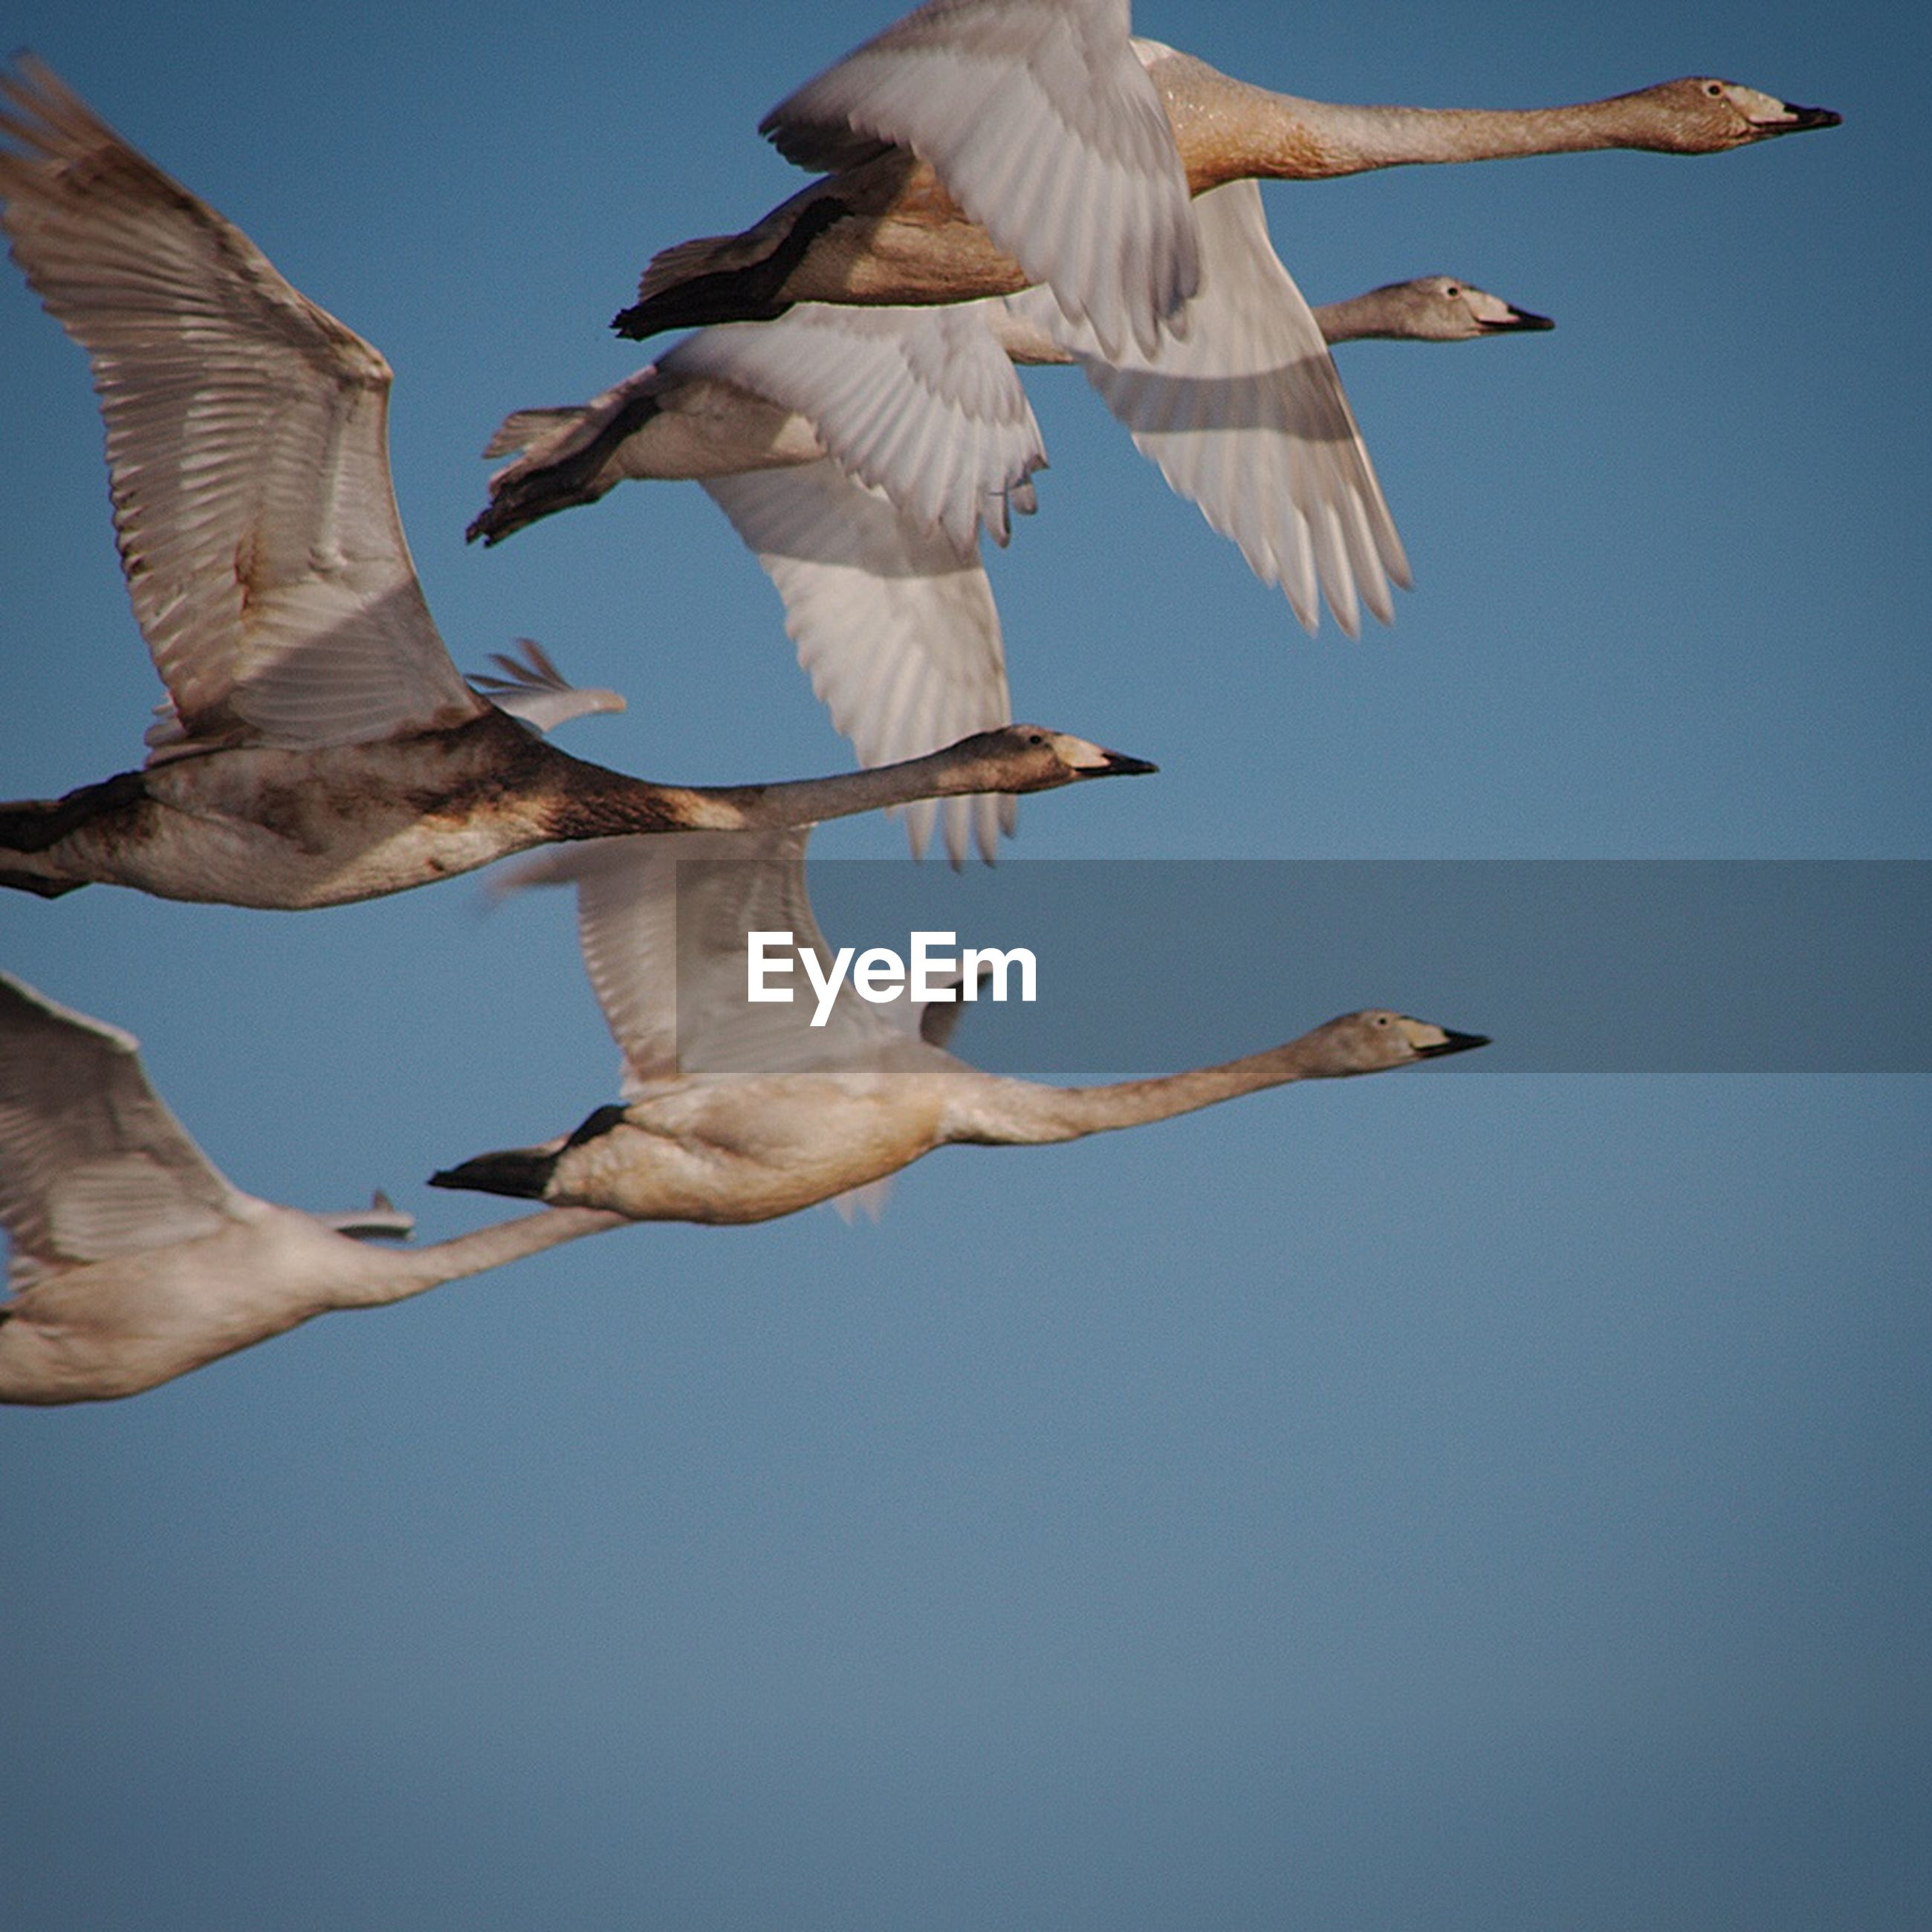 low angle view, flying, animal themes, bird, spread wings, clear sky, one person, mid-air, animals in the wild, one animal, blue, wildlife, sky, full length, seagull, person, day, animal wing, freedom, sunlight